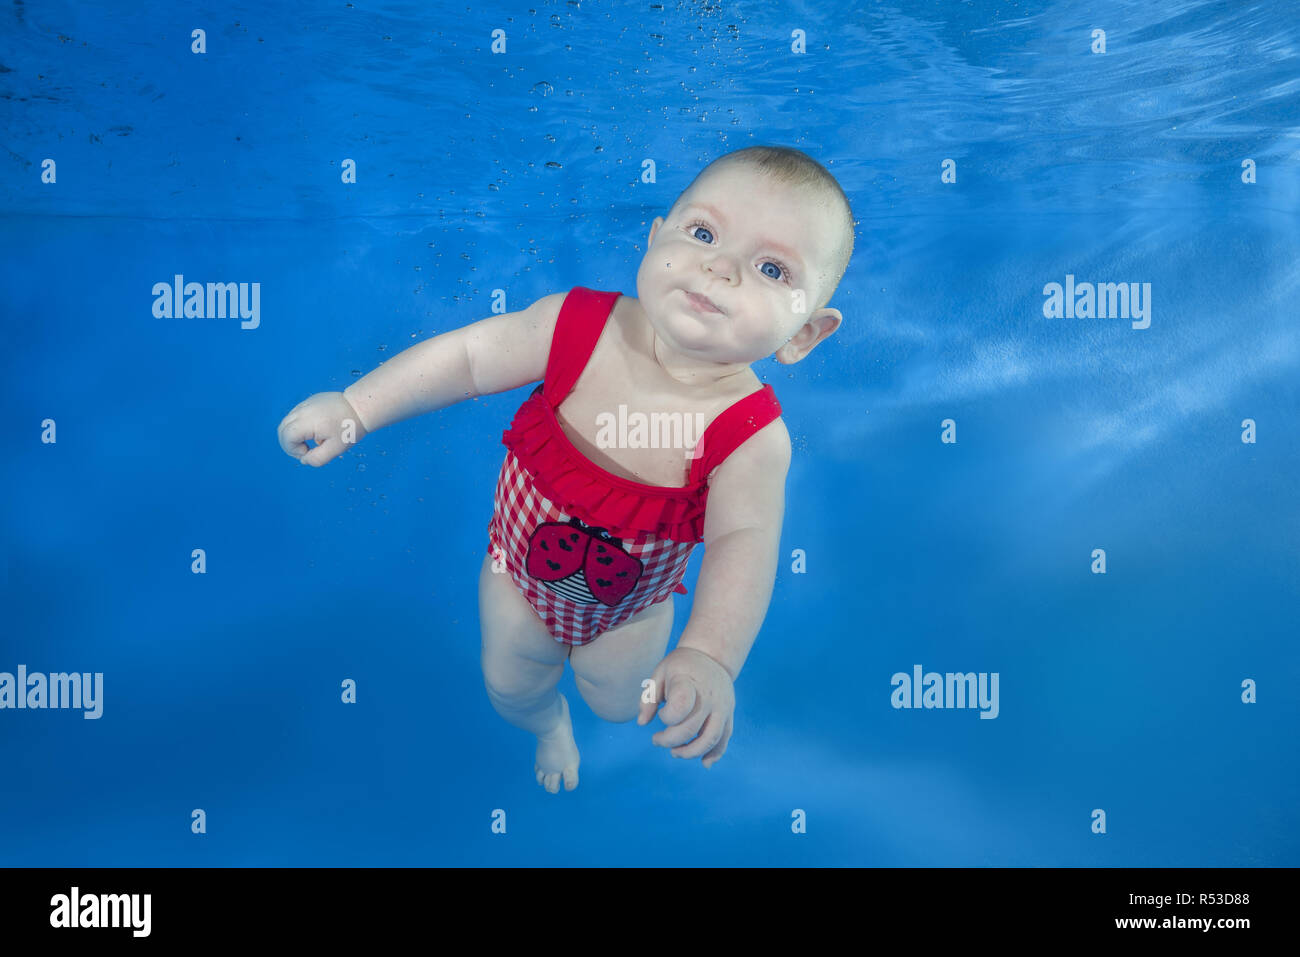 Beautiful baby girl in a red swimming suit swim underwater on blue water background. Healthy family lifestyle and children water sports activity. Chil - Stock Image